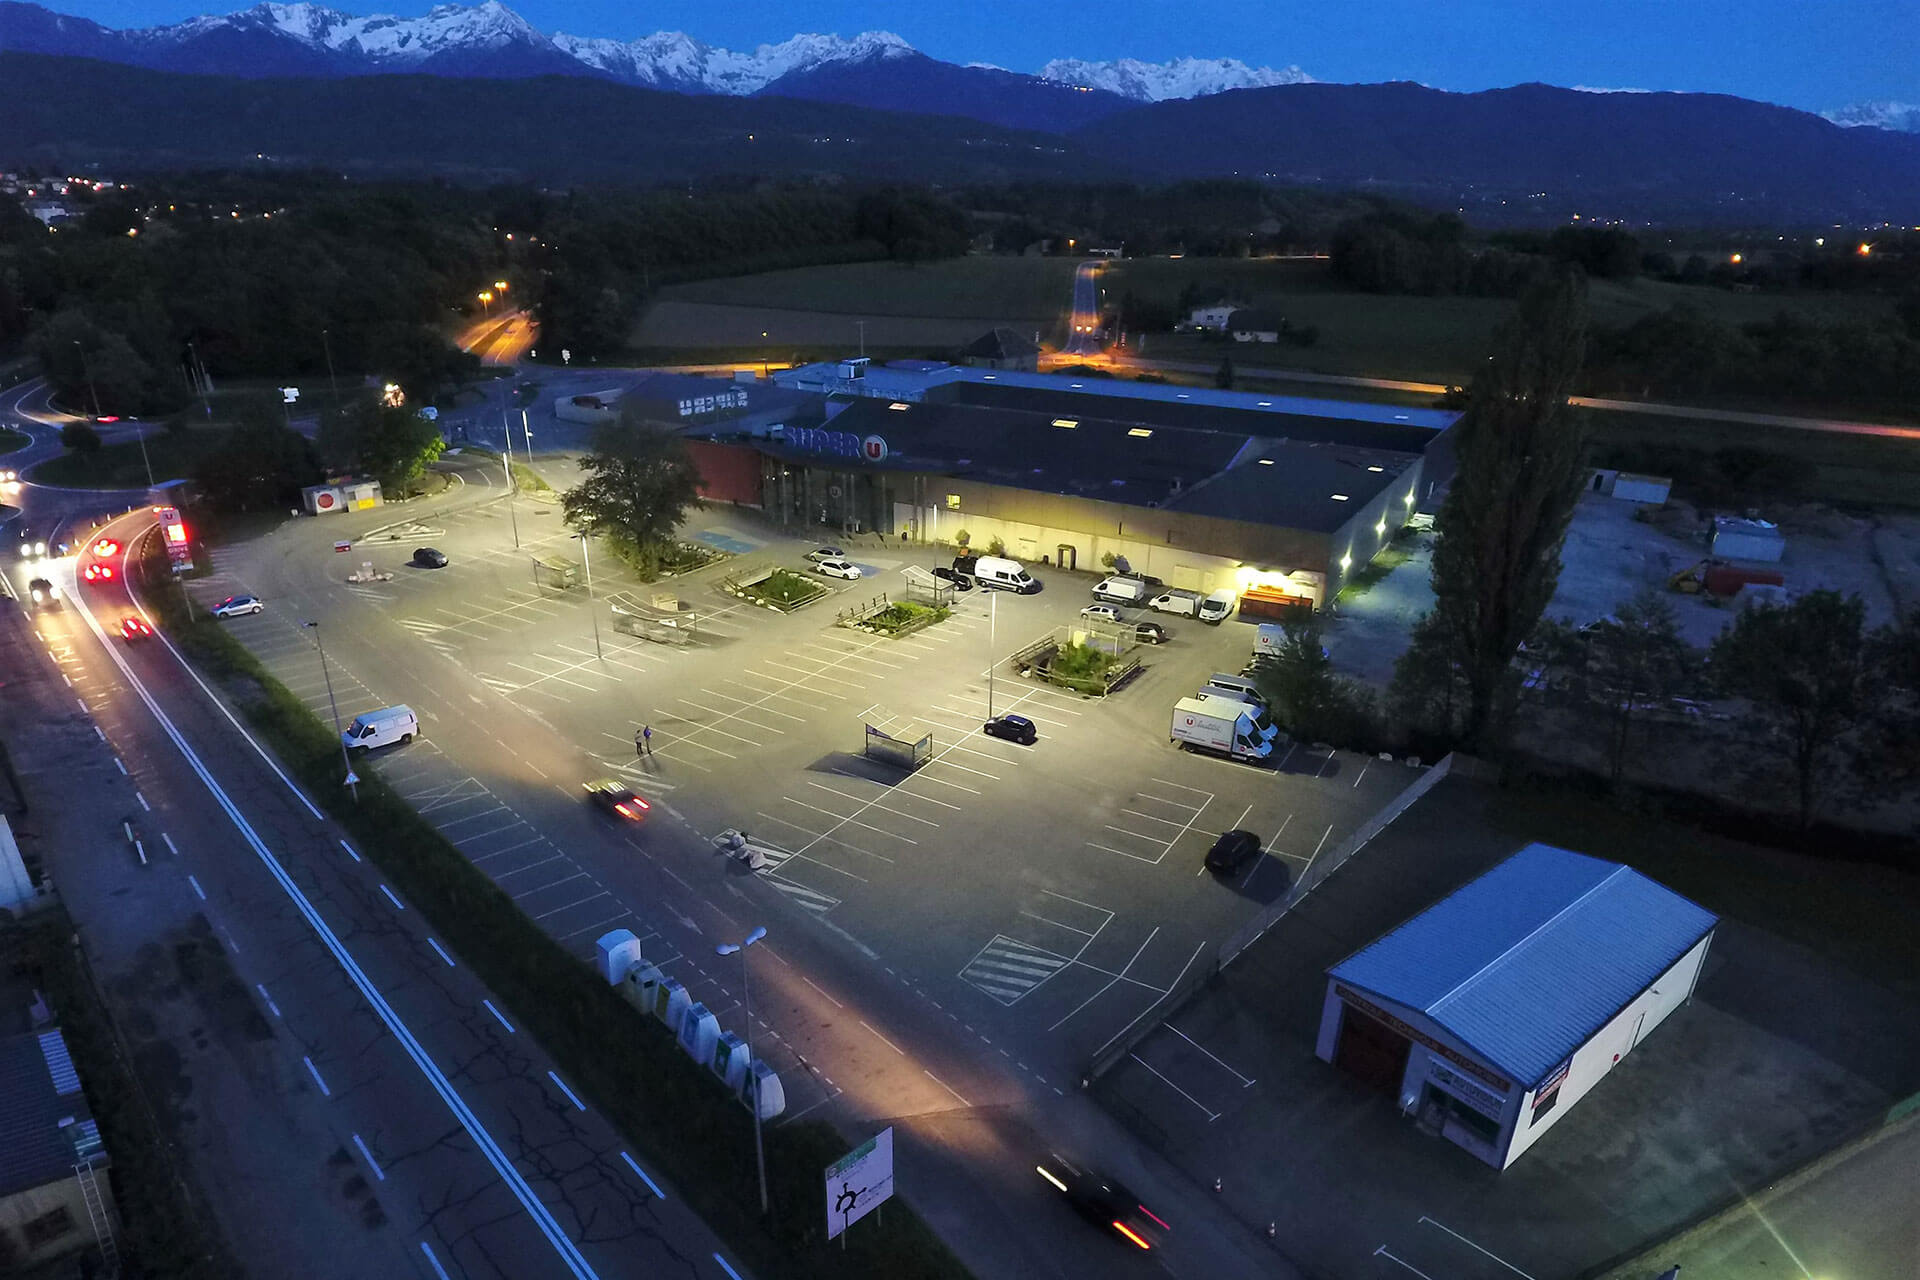 Schréder LED luminaires generate energy savings of 57% for Super U in Montmelian, heping the store achieve sustainability goals